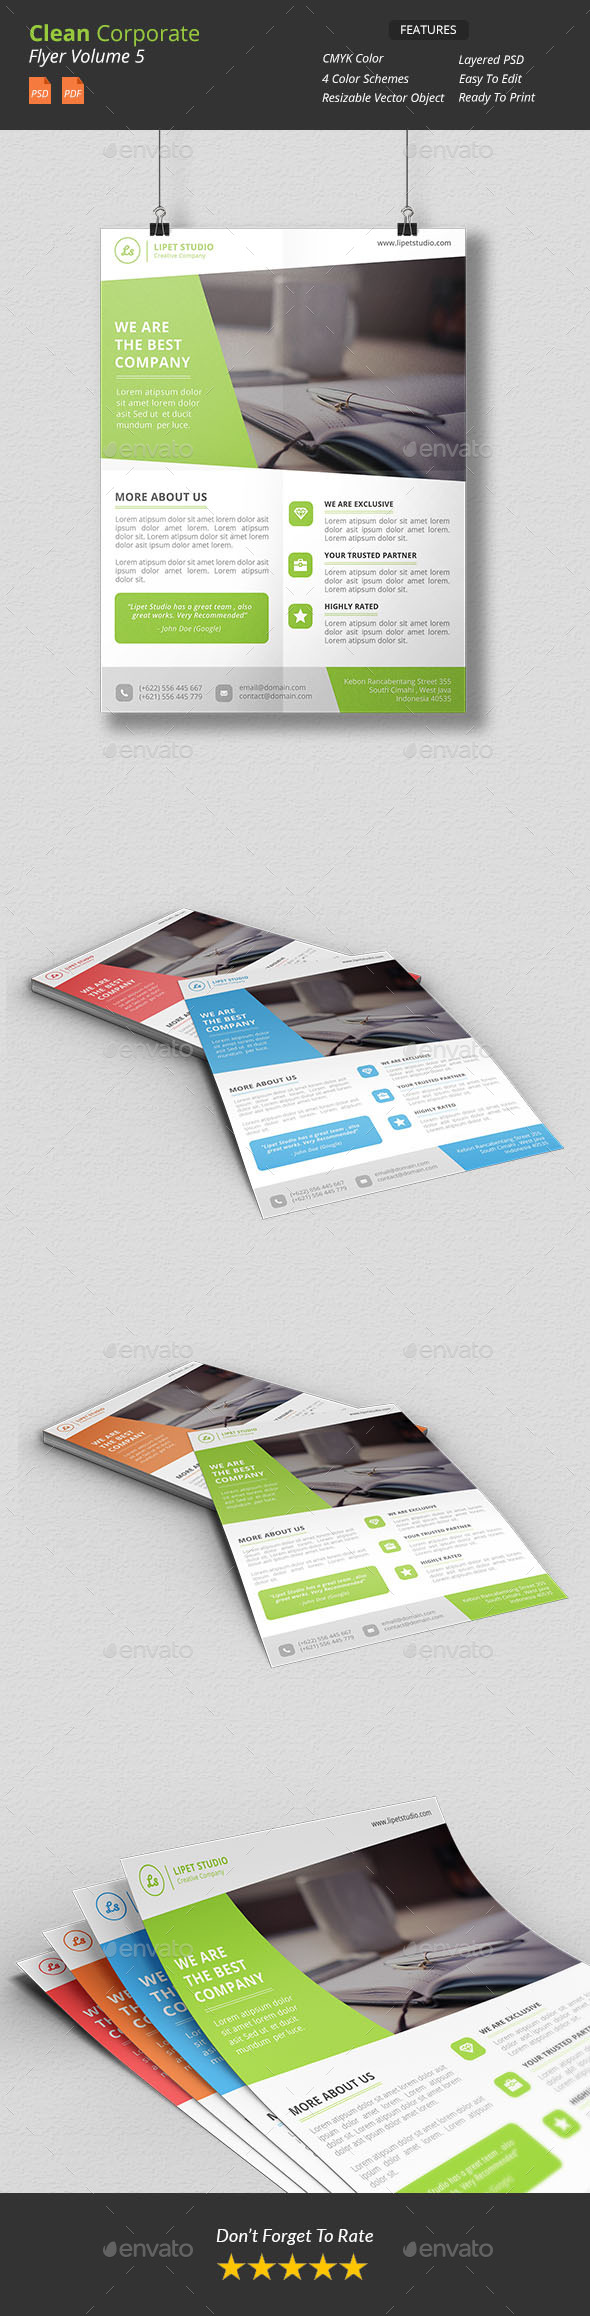 Clean Corporate Flyer v5 - Corporate Flyers